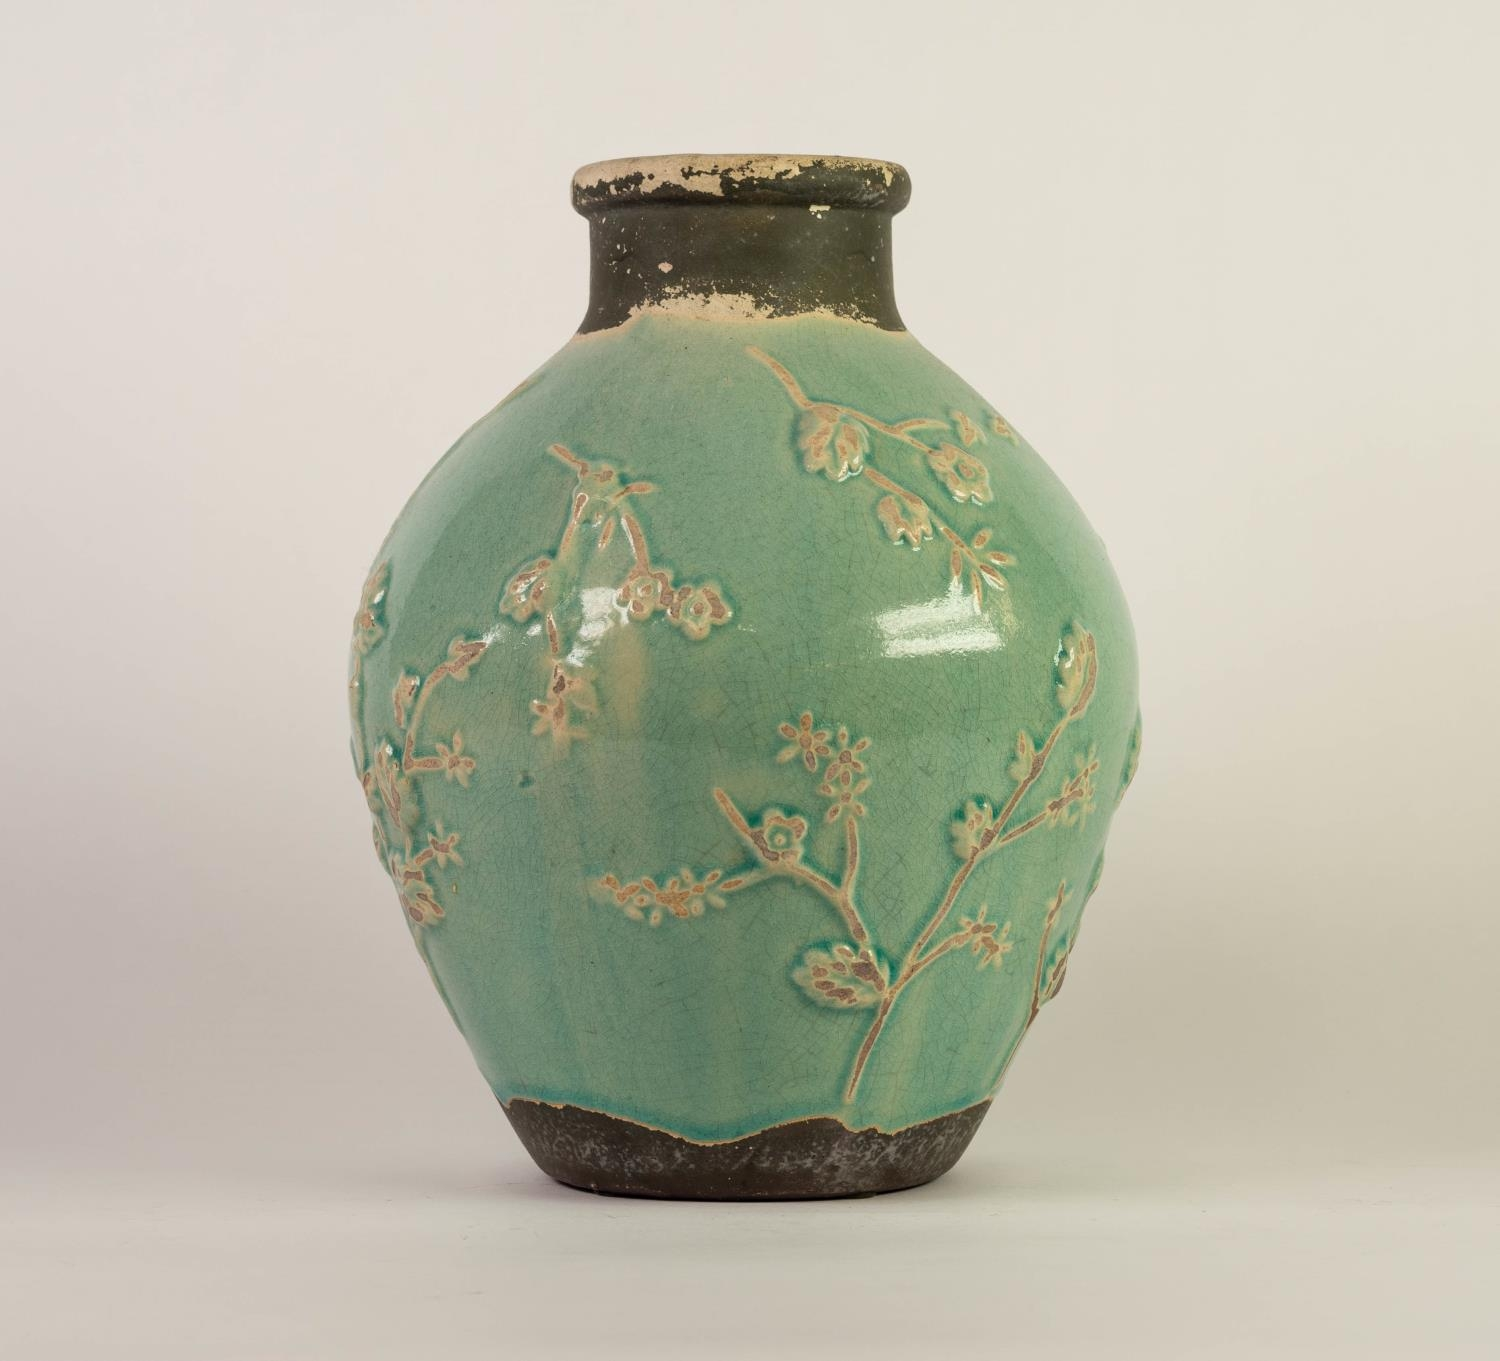 CHINESE PROVINCIAL WARE PORCELANEOUS OVOID VASE WITH SHORT CYLINDRICAL NECK, the principal body